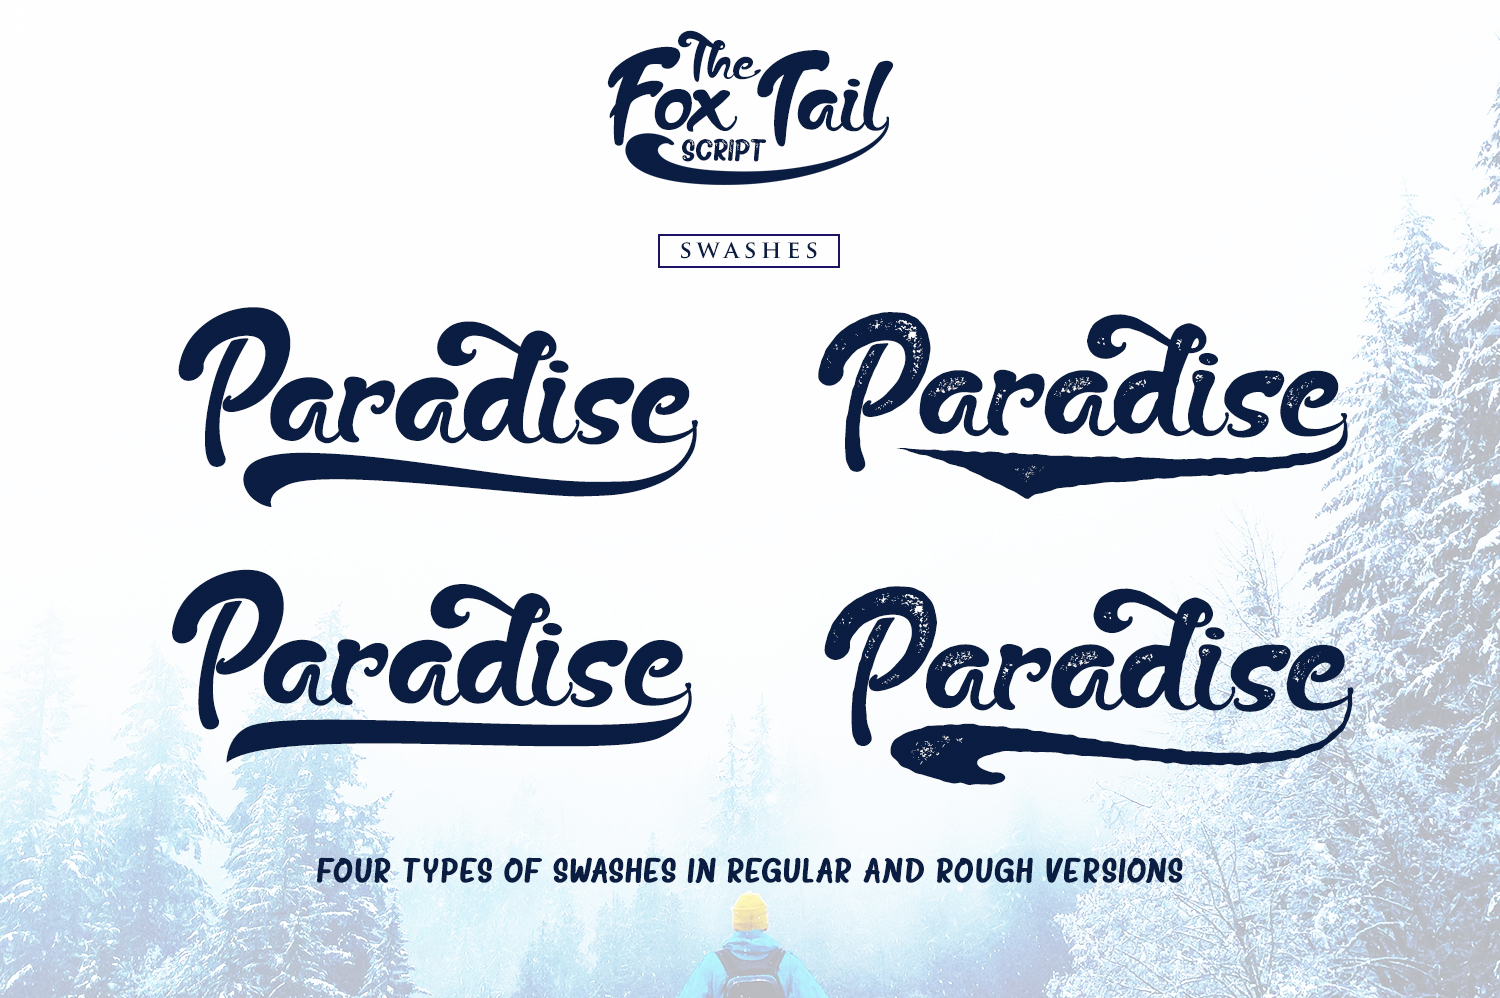 The Fox Tail Font By Din Studio Image 8